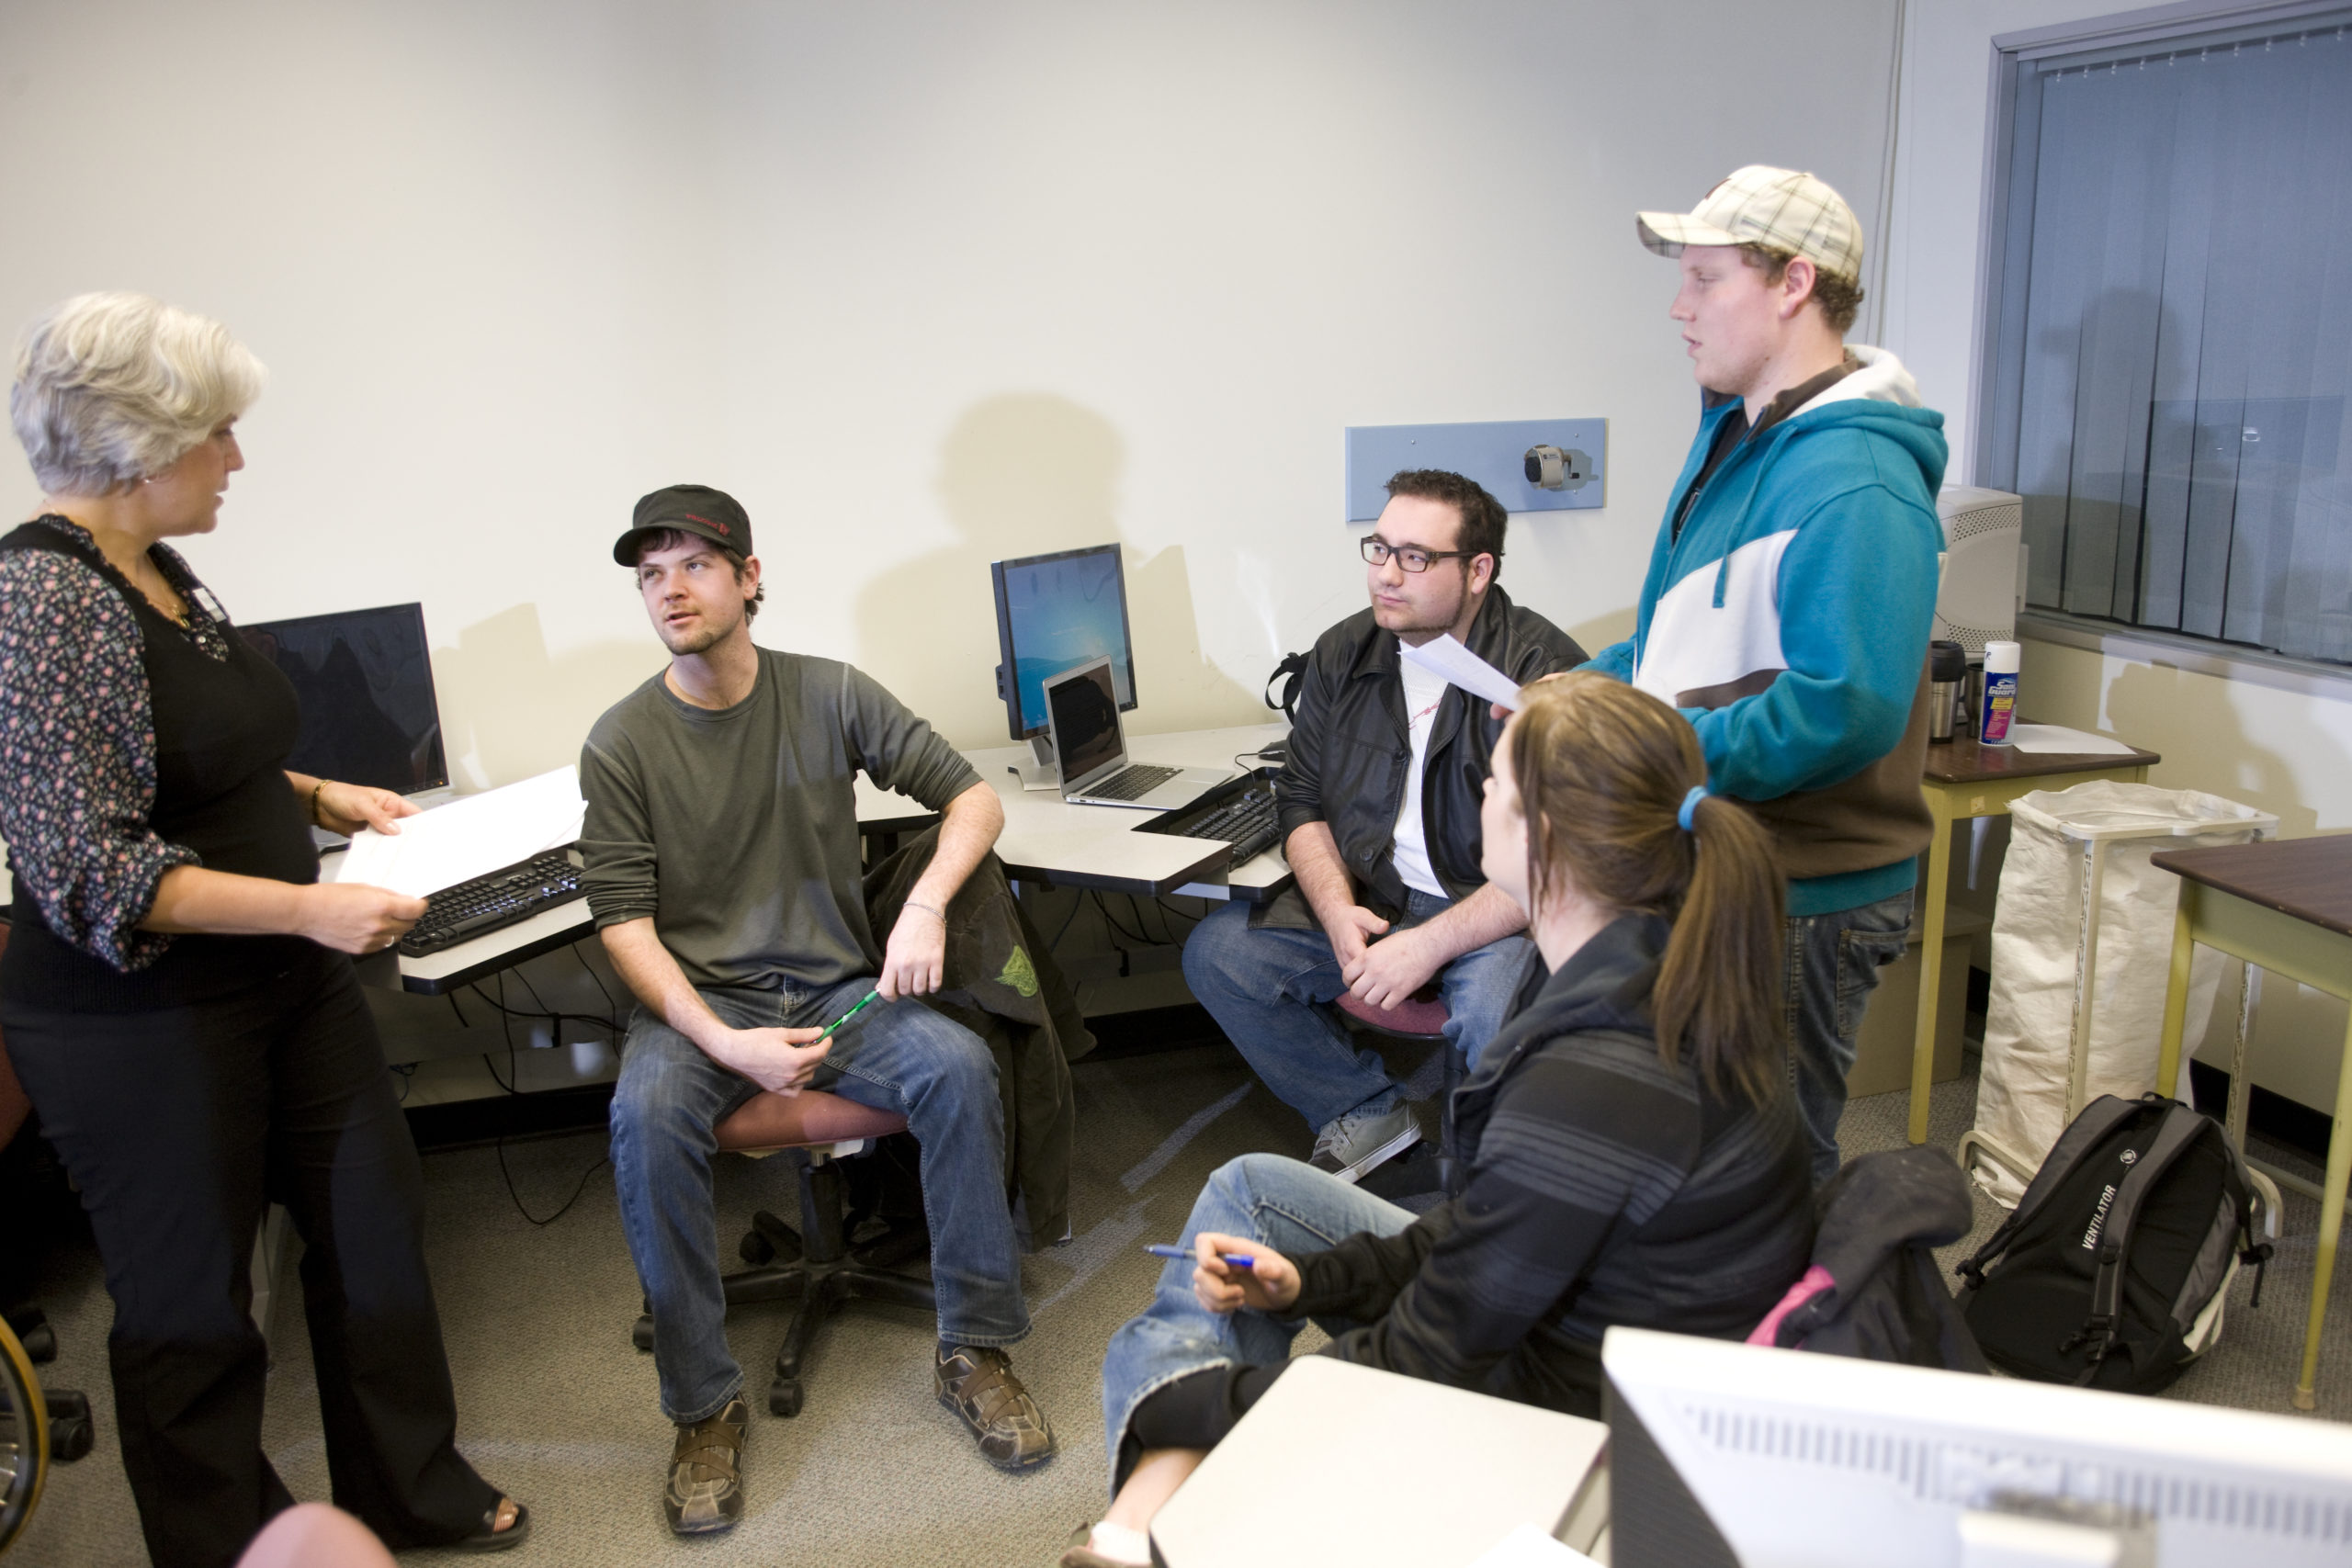 A group of students talking a computer lab